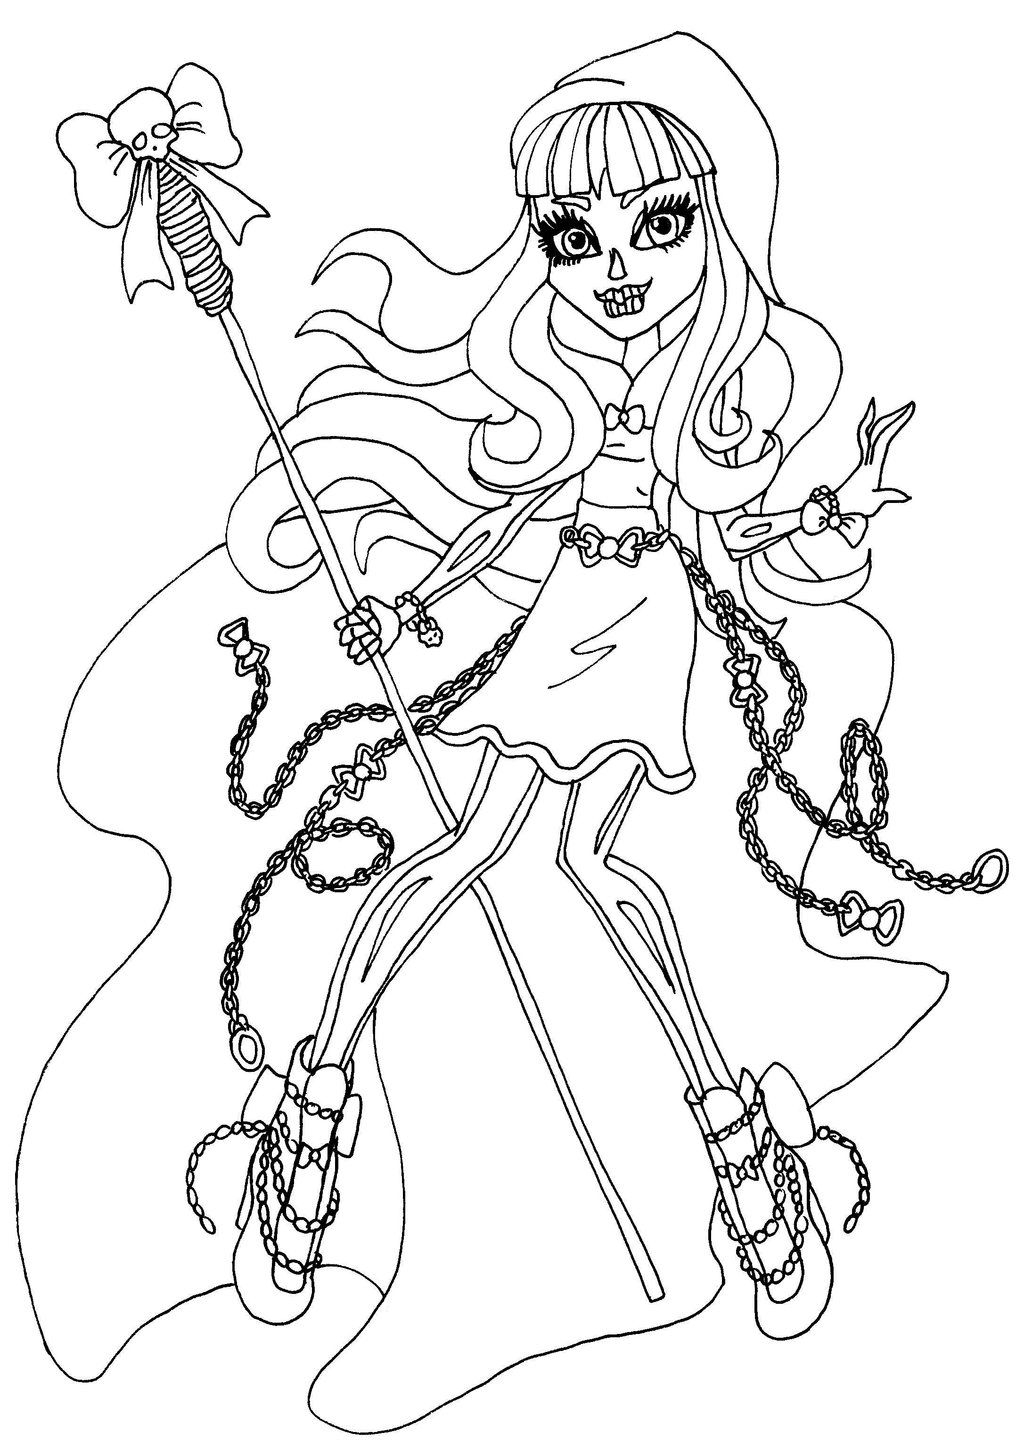 Best Monster High Coloring Pages Printable Print Color Craft Pic to Print Of Monster High Baby Coloring Pages 012 to Coloring Pages Collection